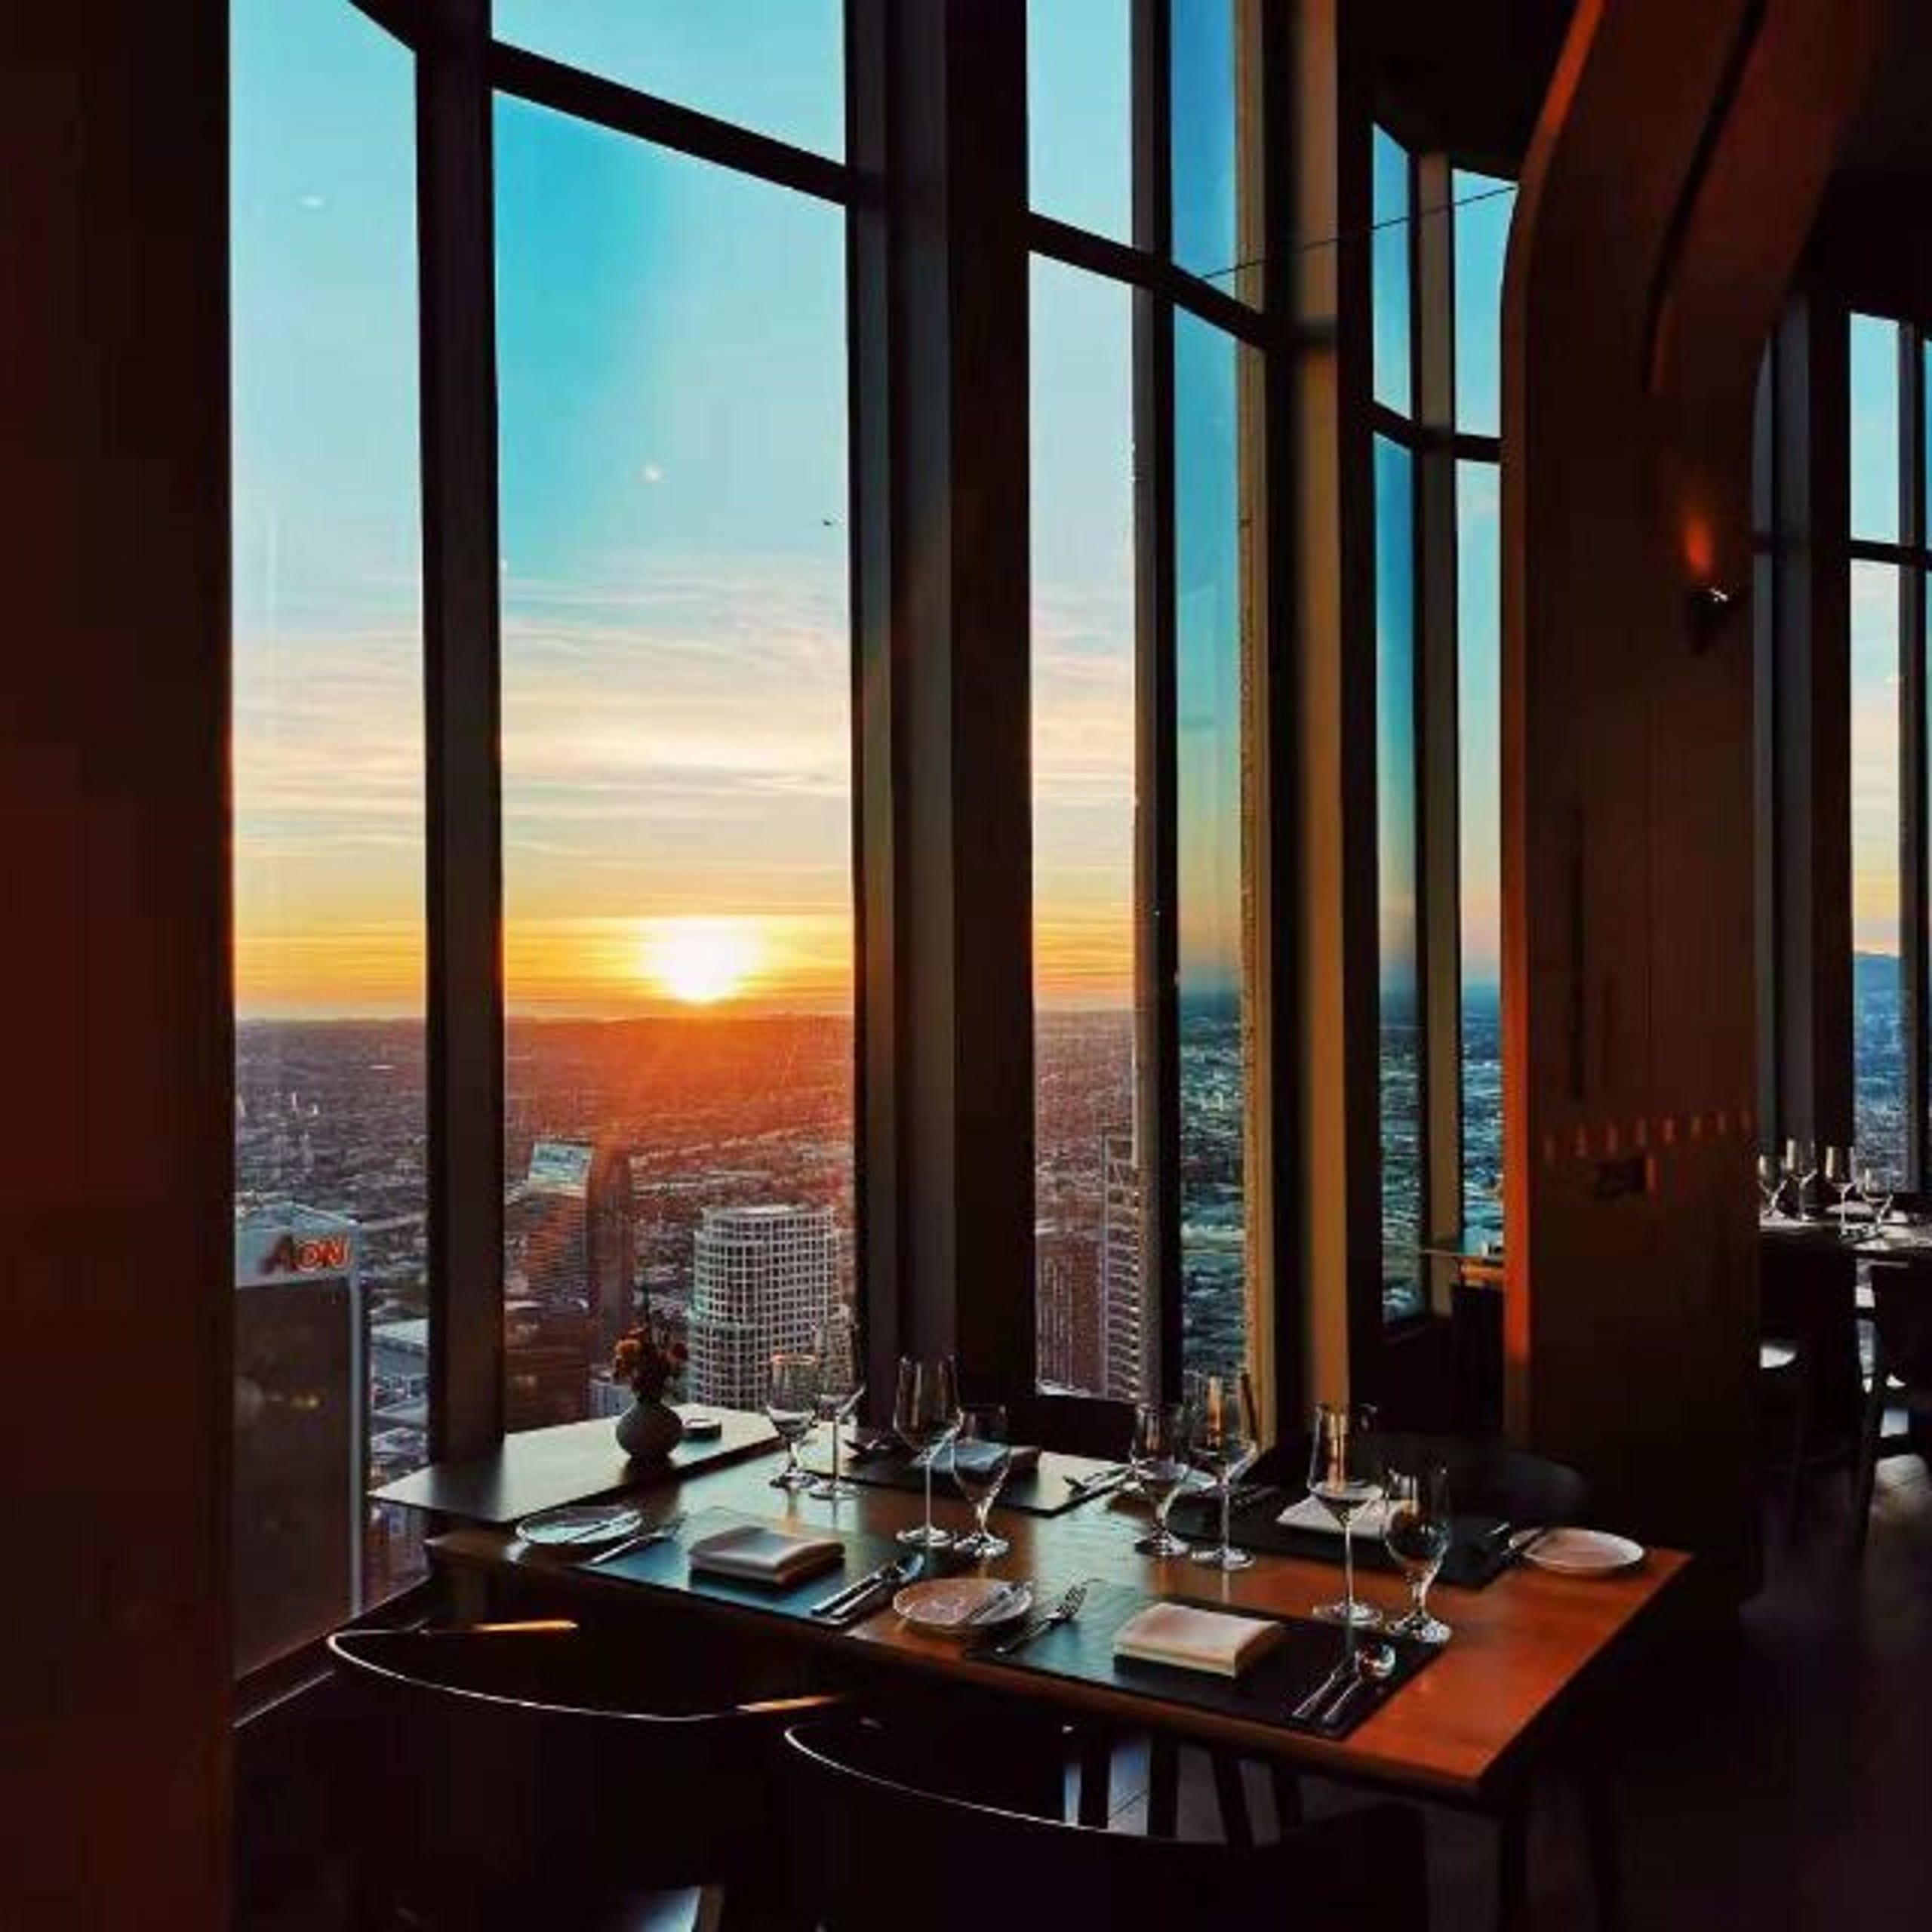 The 100 Most Scenic Restaurants In The Us According To